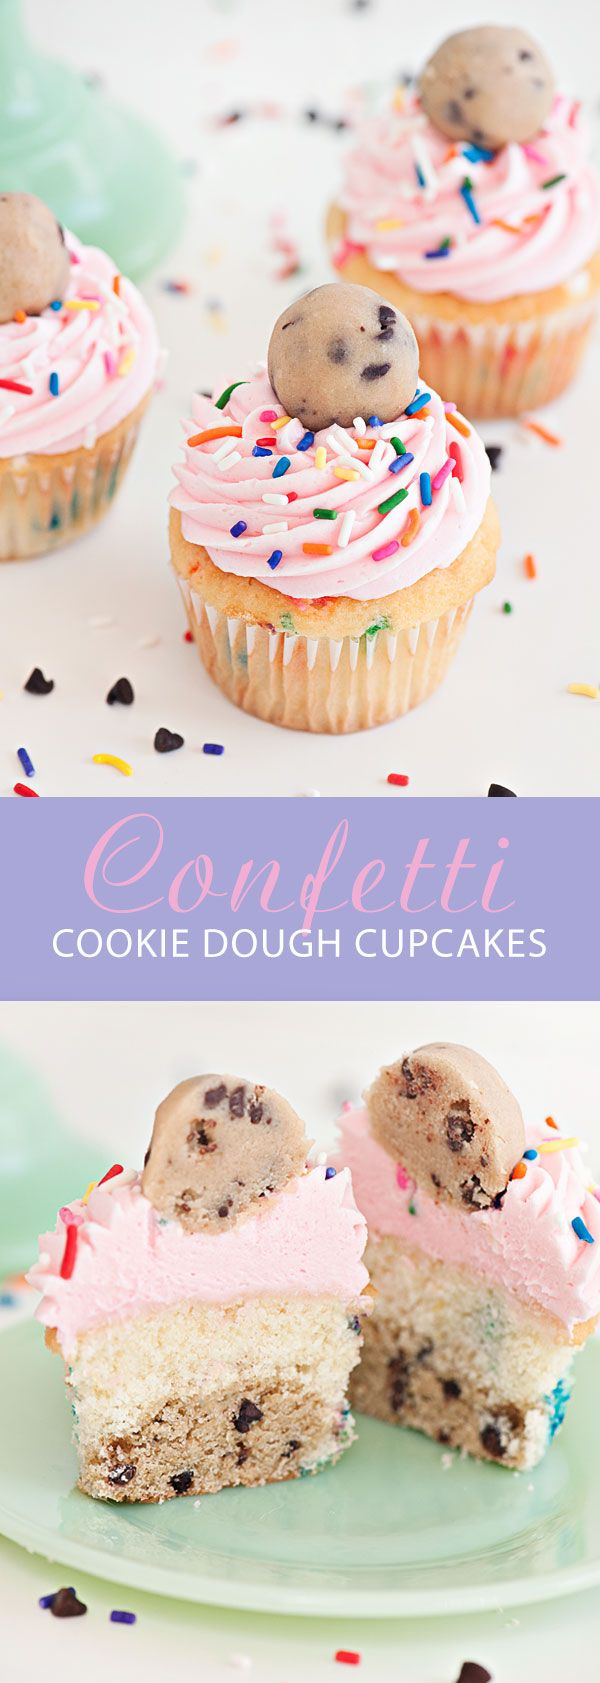 The most epic Cookie Dough Cupcakes ever! White confetti cake stuffed with  chocolate chip confetti